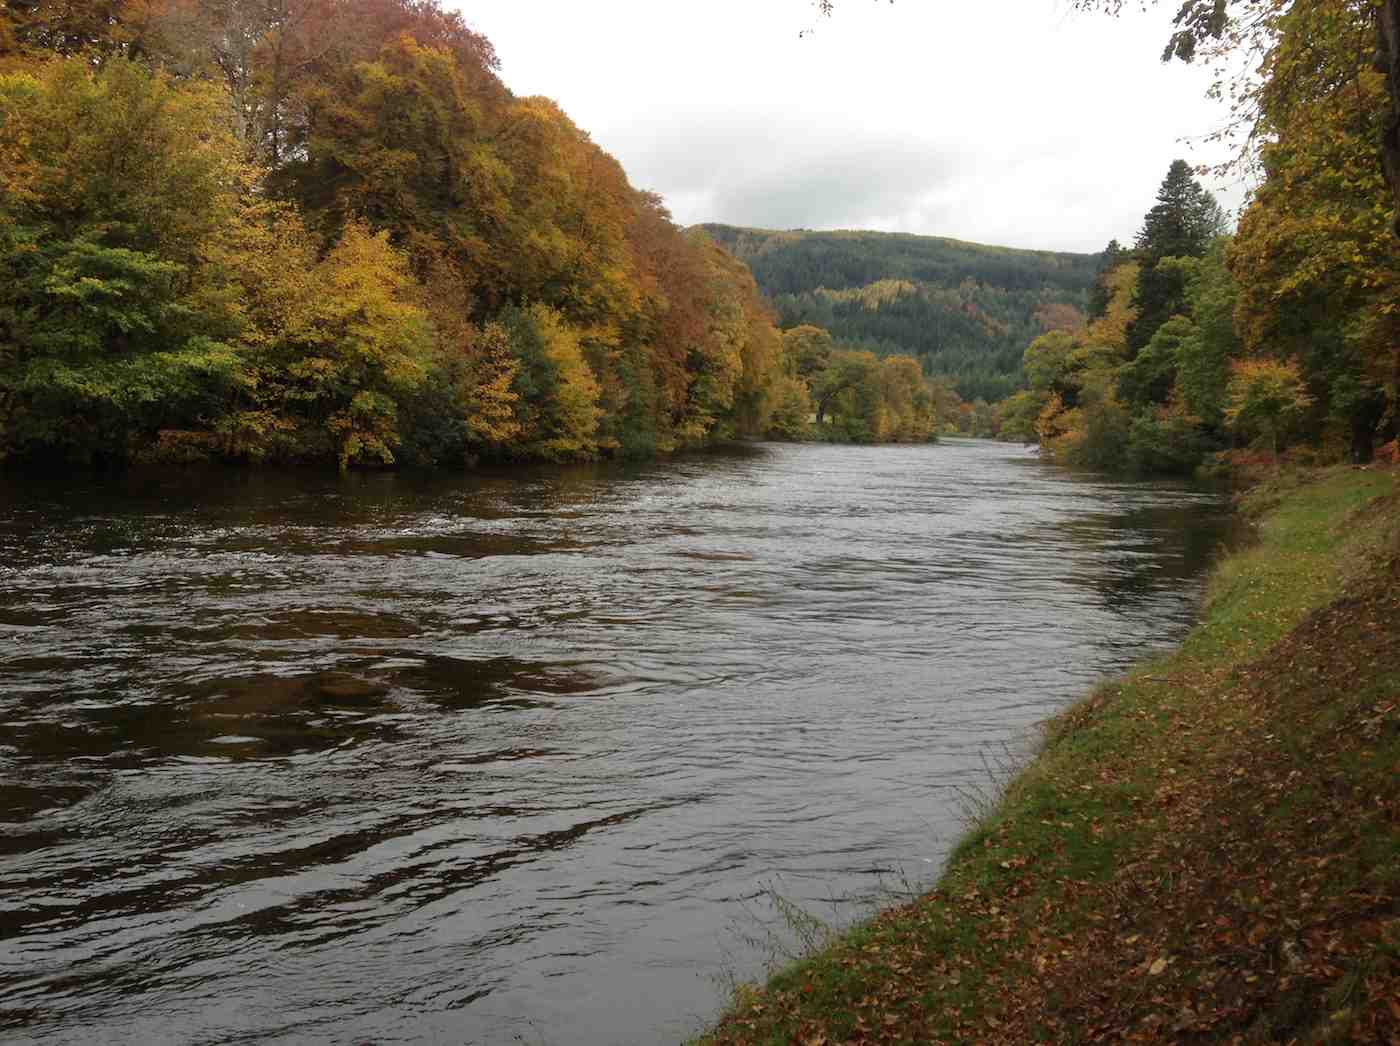 The fishing season ends on 15 October on the Tay